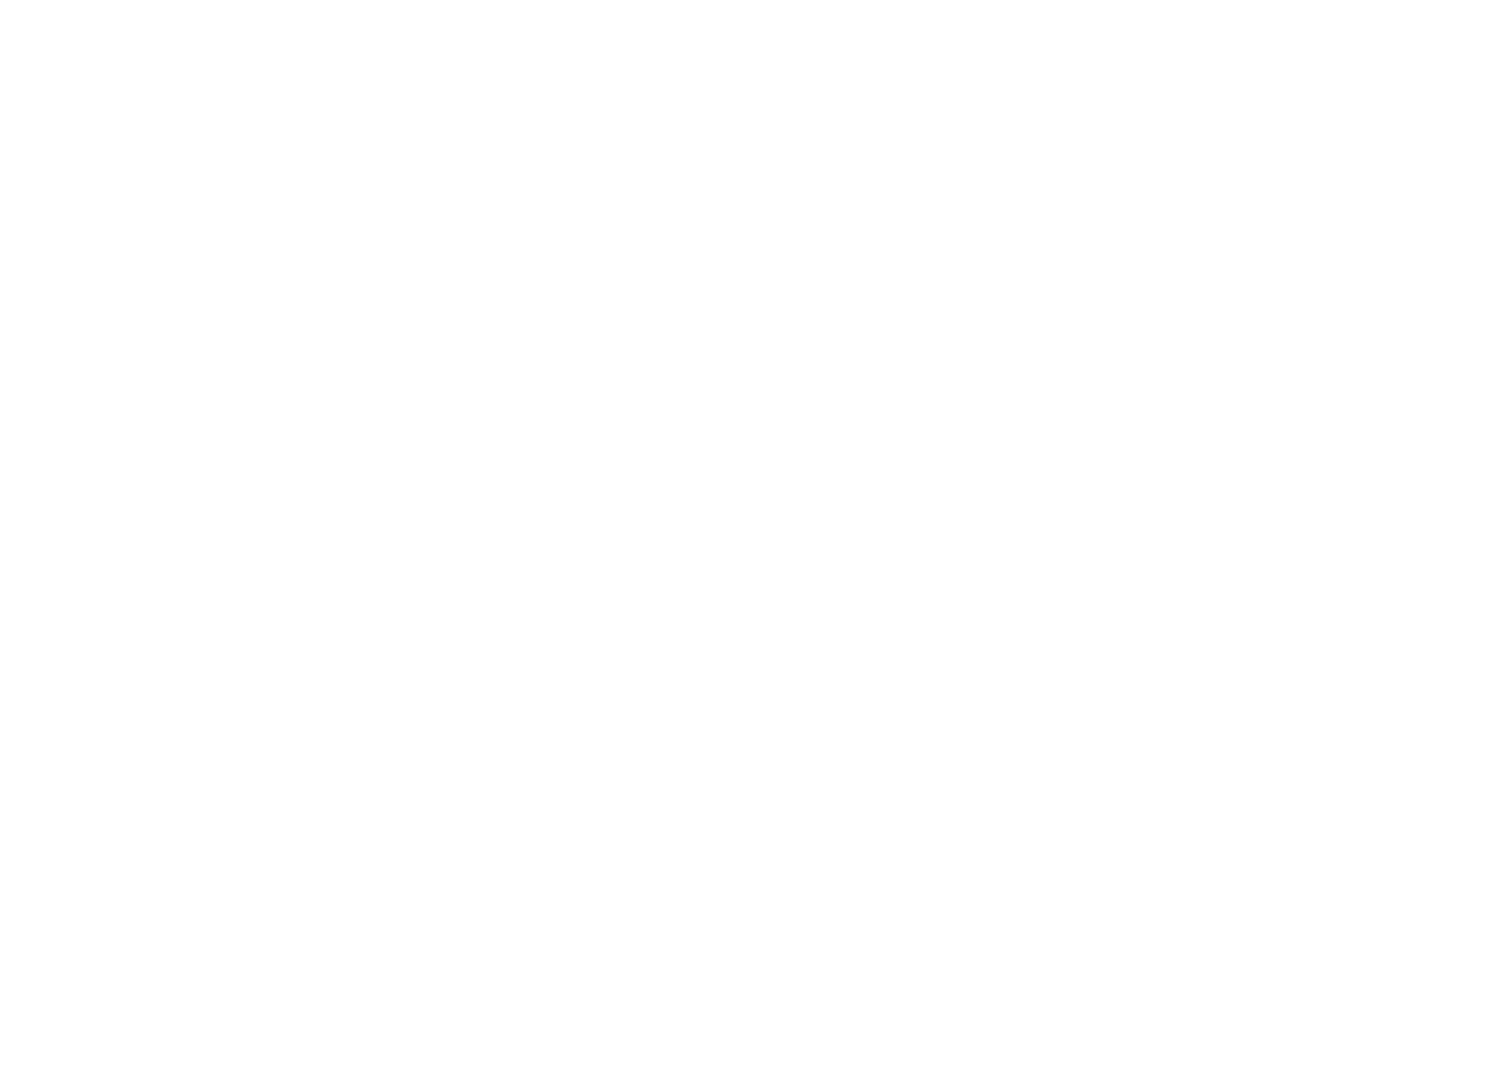 Mana Kids Foundation